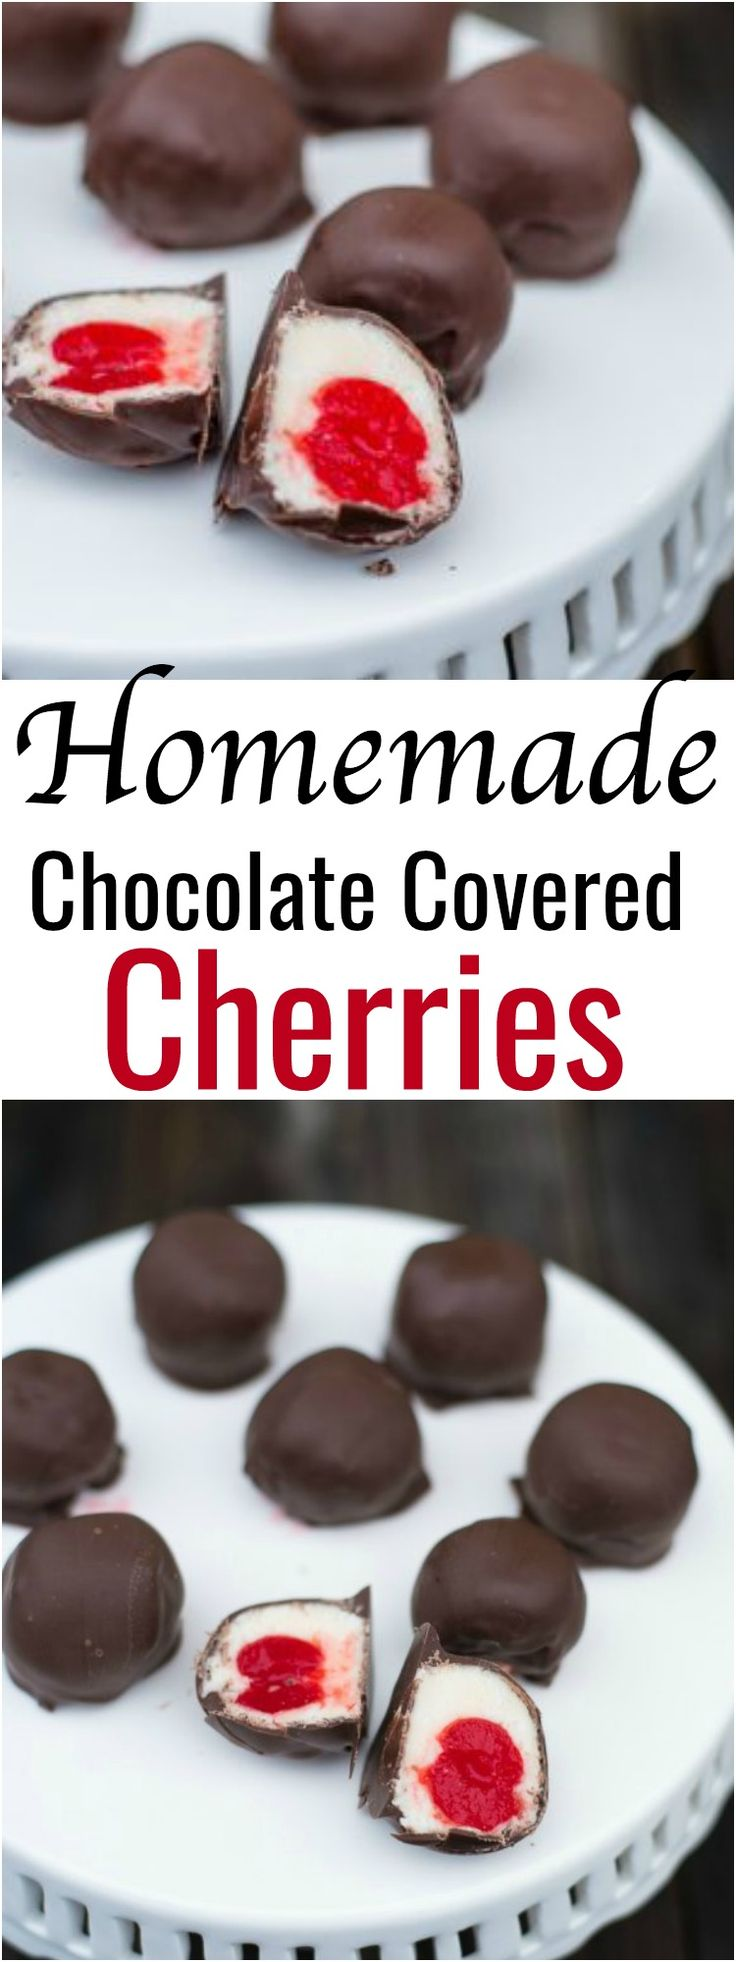 These Homemade Chocolate Covered Cherries are delicious and so easy to make. These are my dad's favorite!